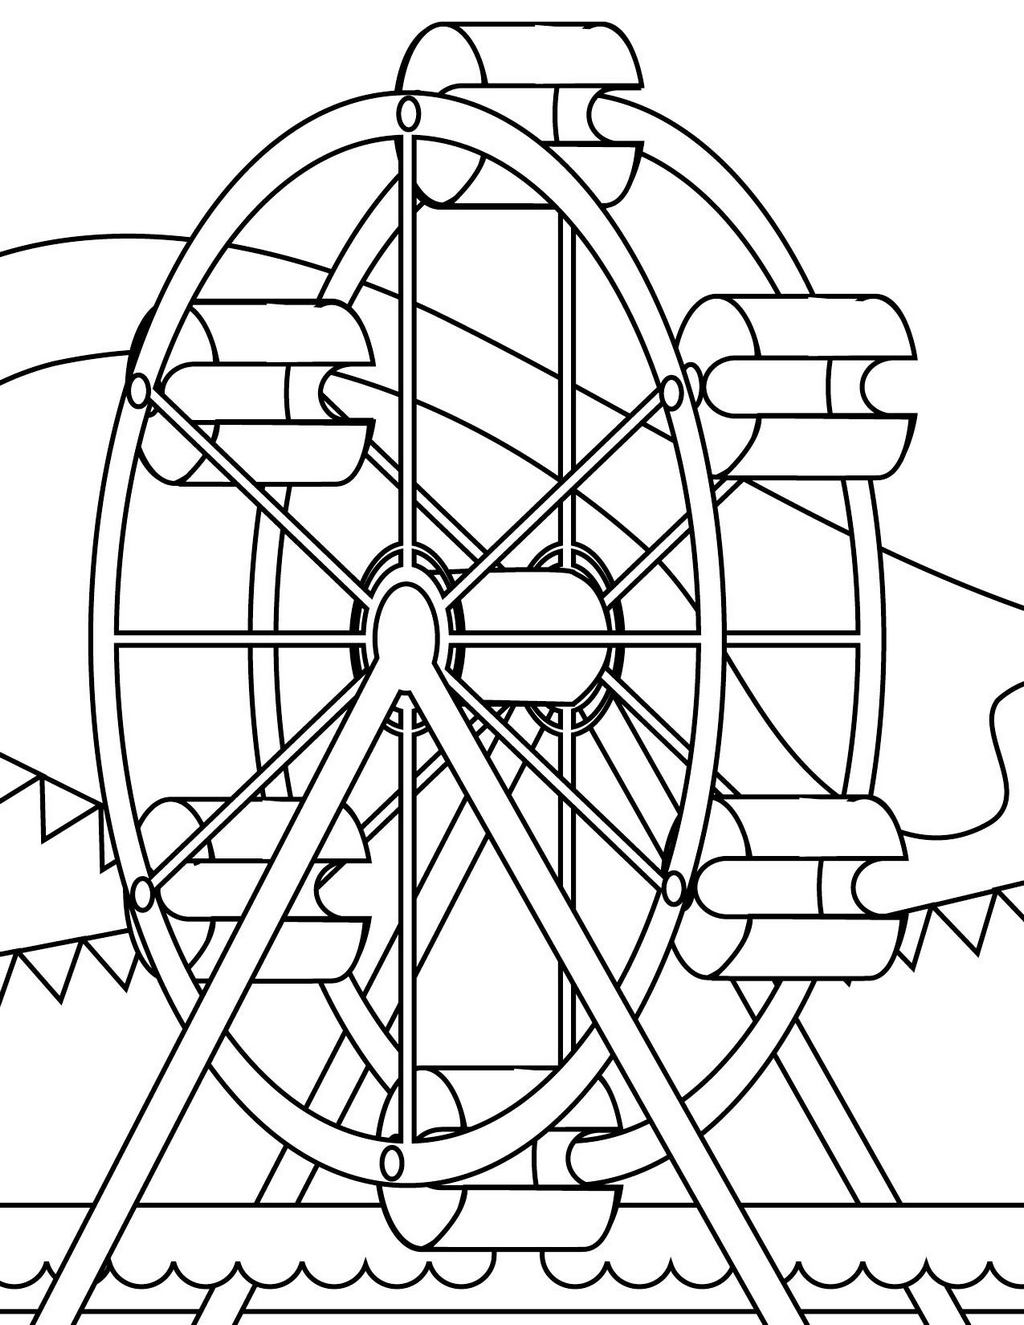 fun ferris wheel coloring sheet for kids